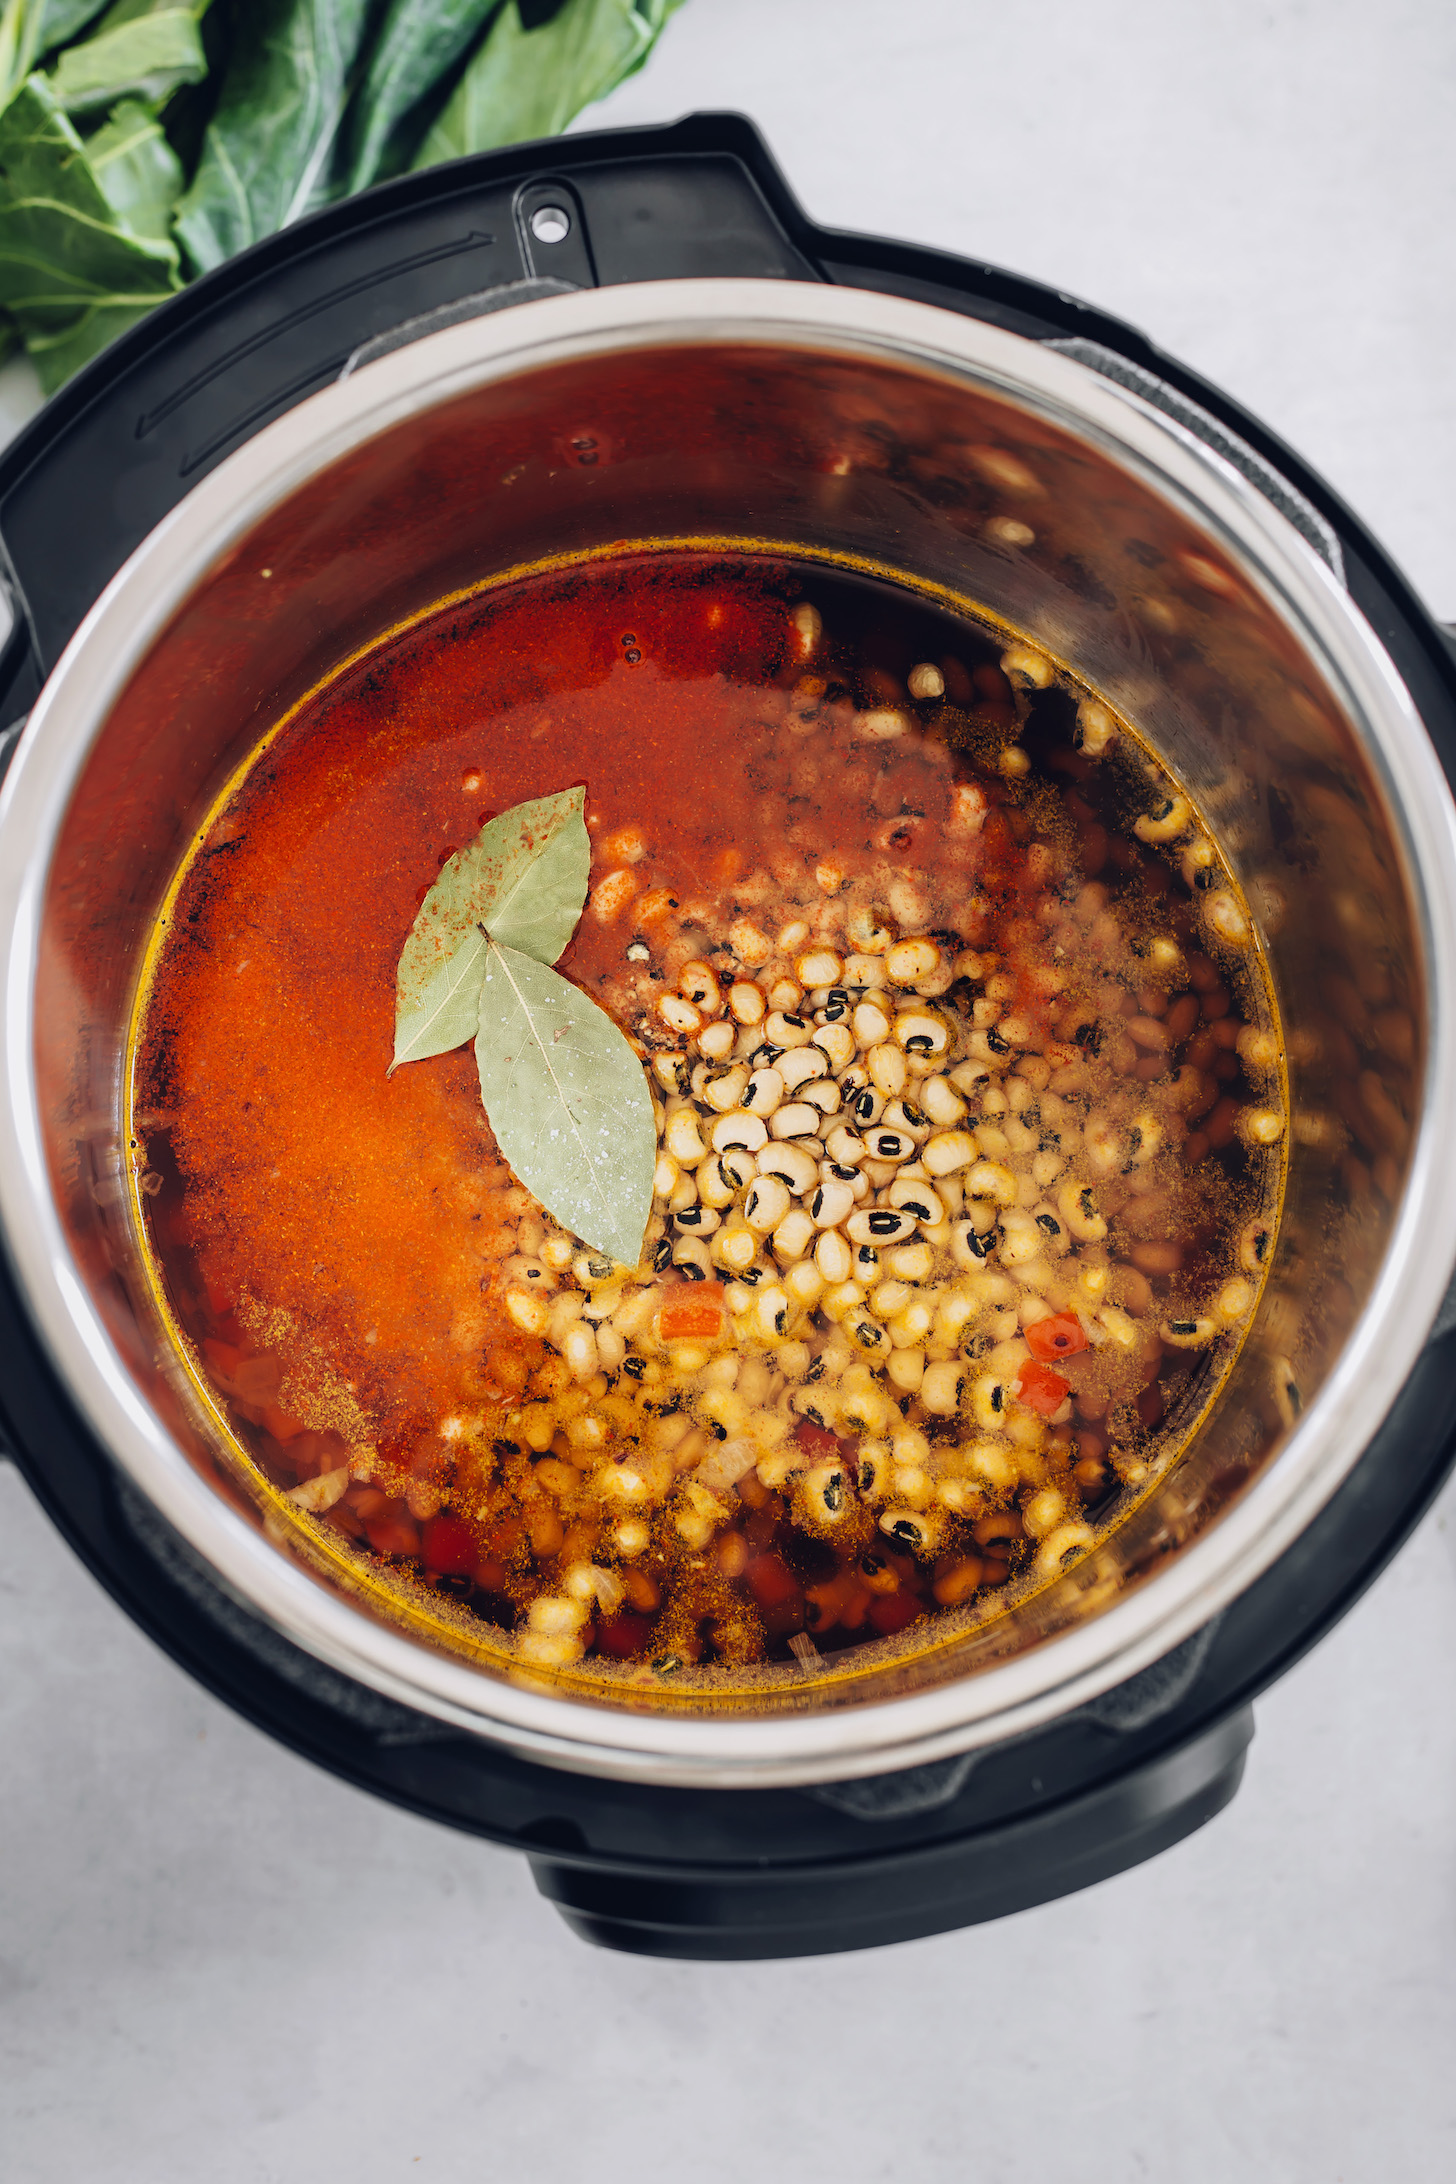 Instant Pot with black eyed peas, broth, and seasonings